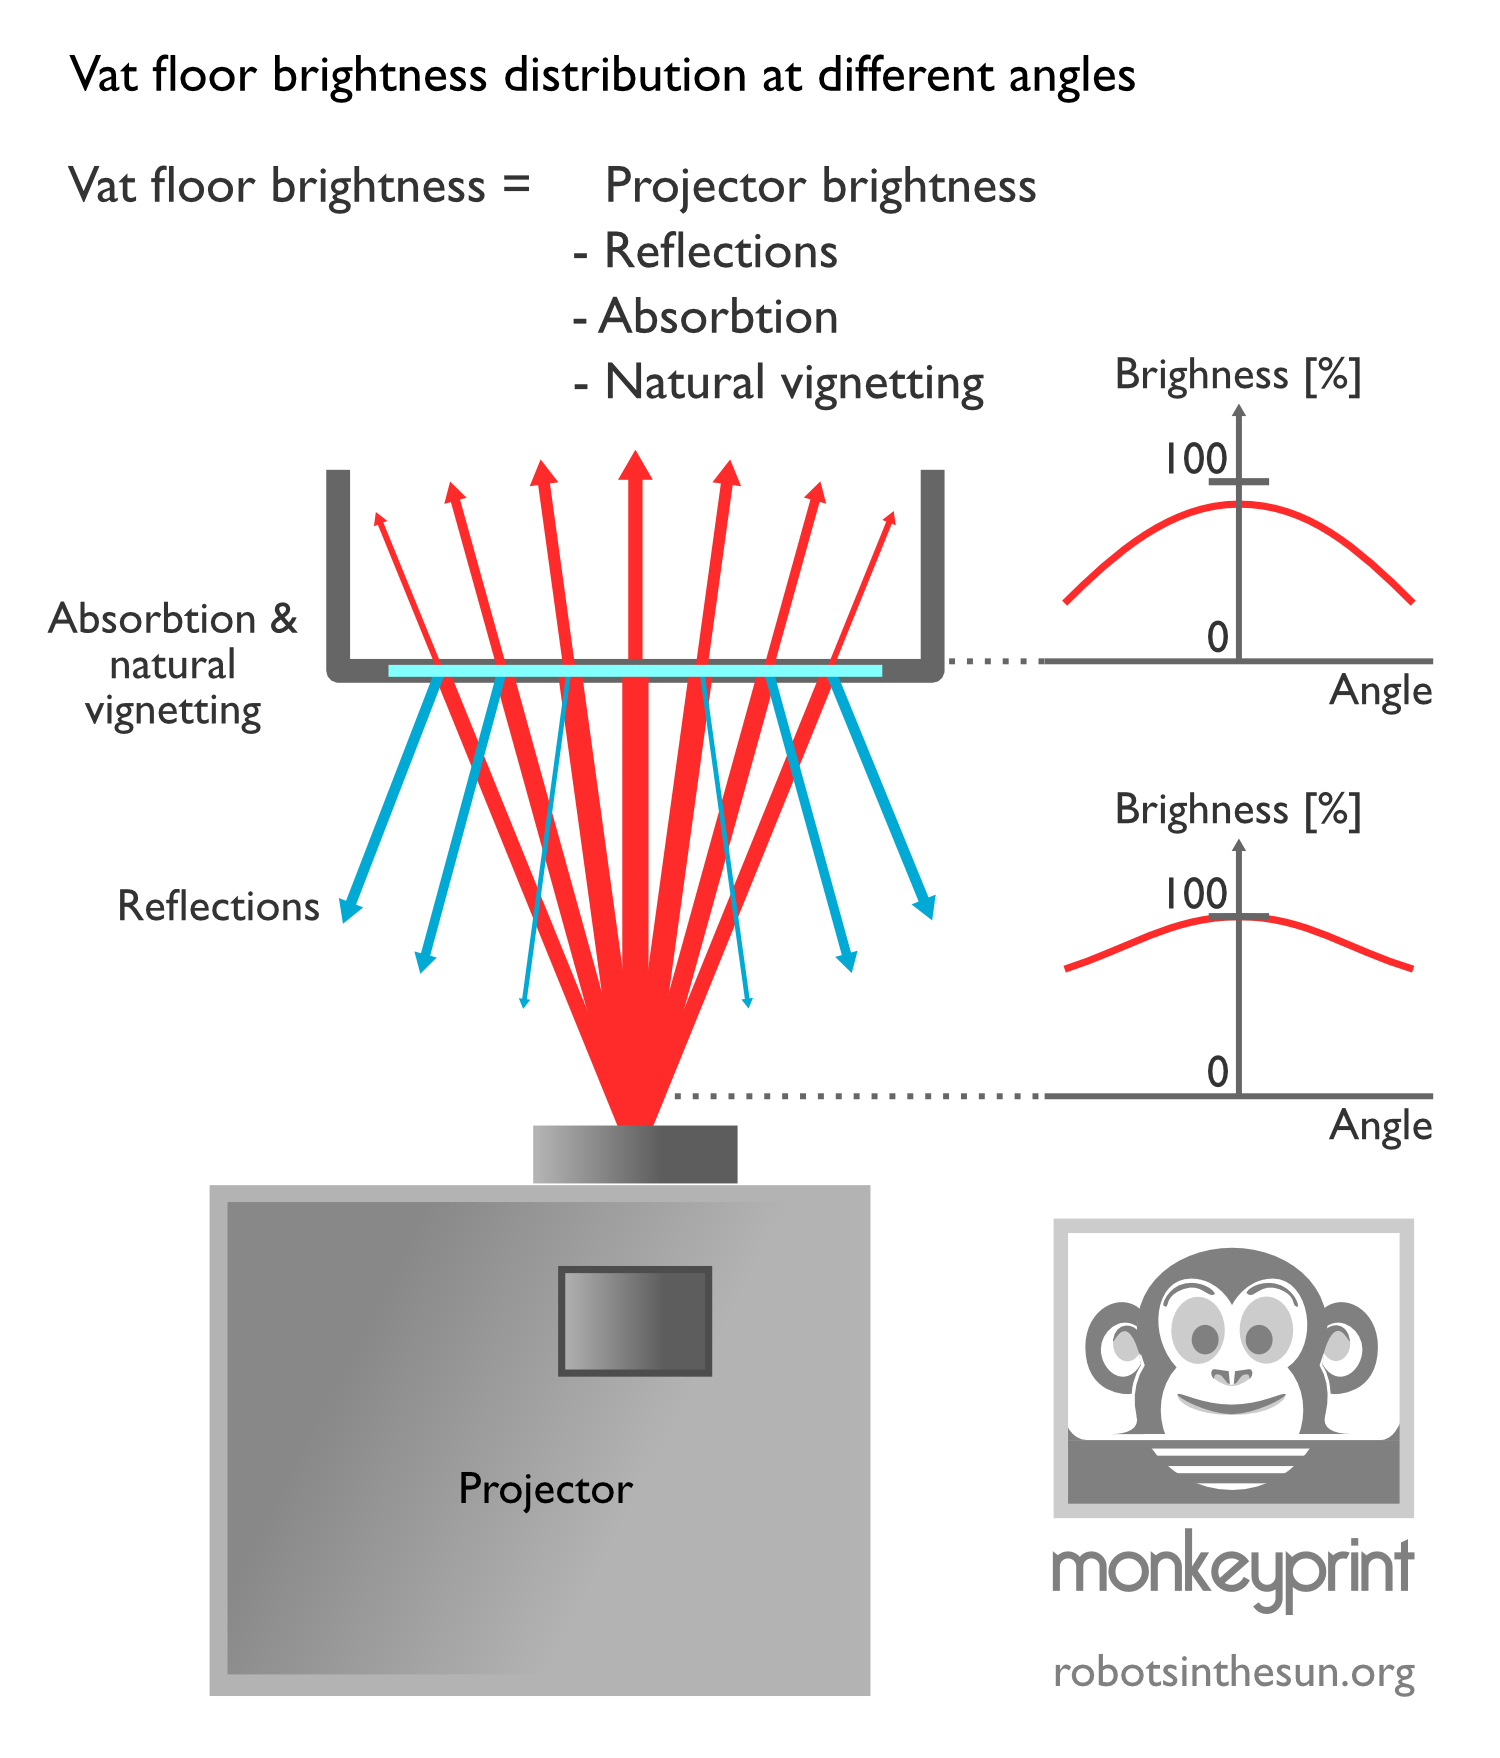 Schematic diagram of light rays being absorbed and reflected on a 3d DLP printers vat floor.